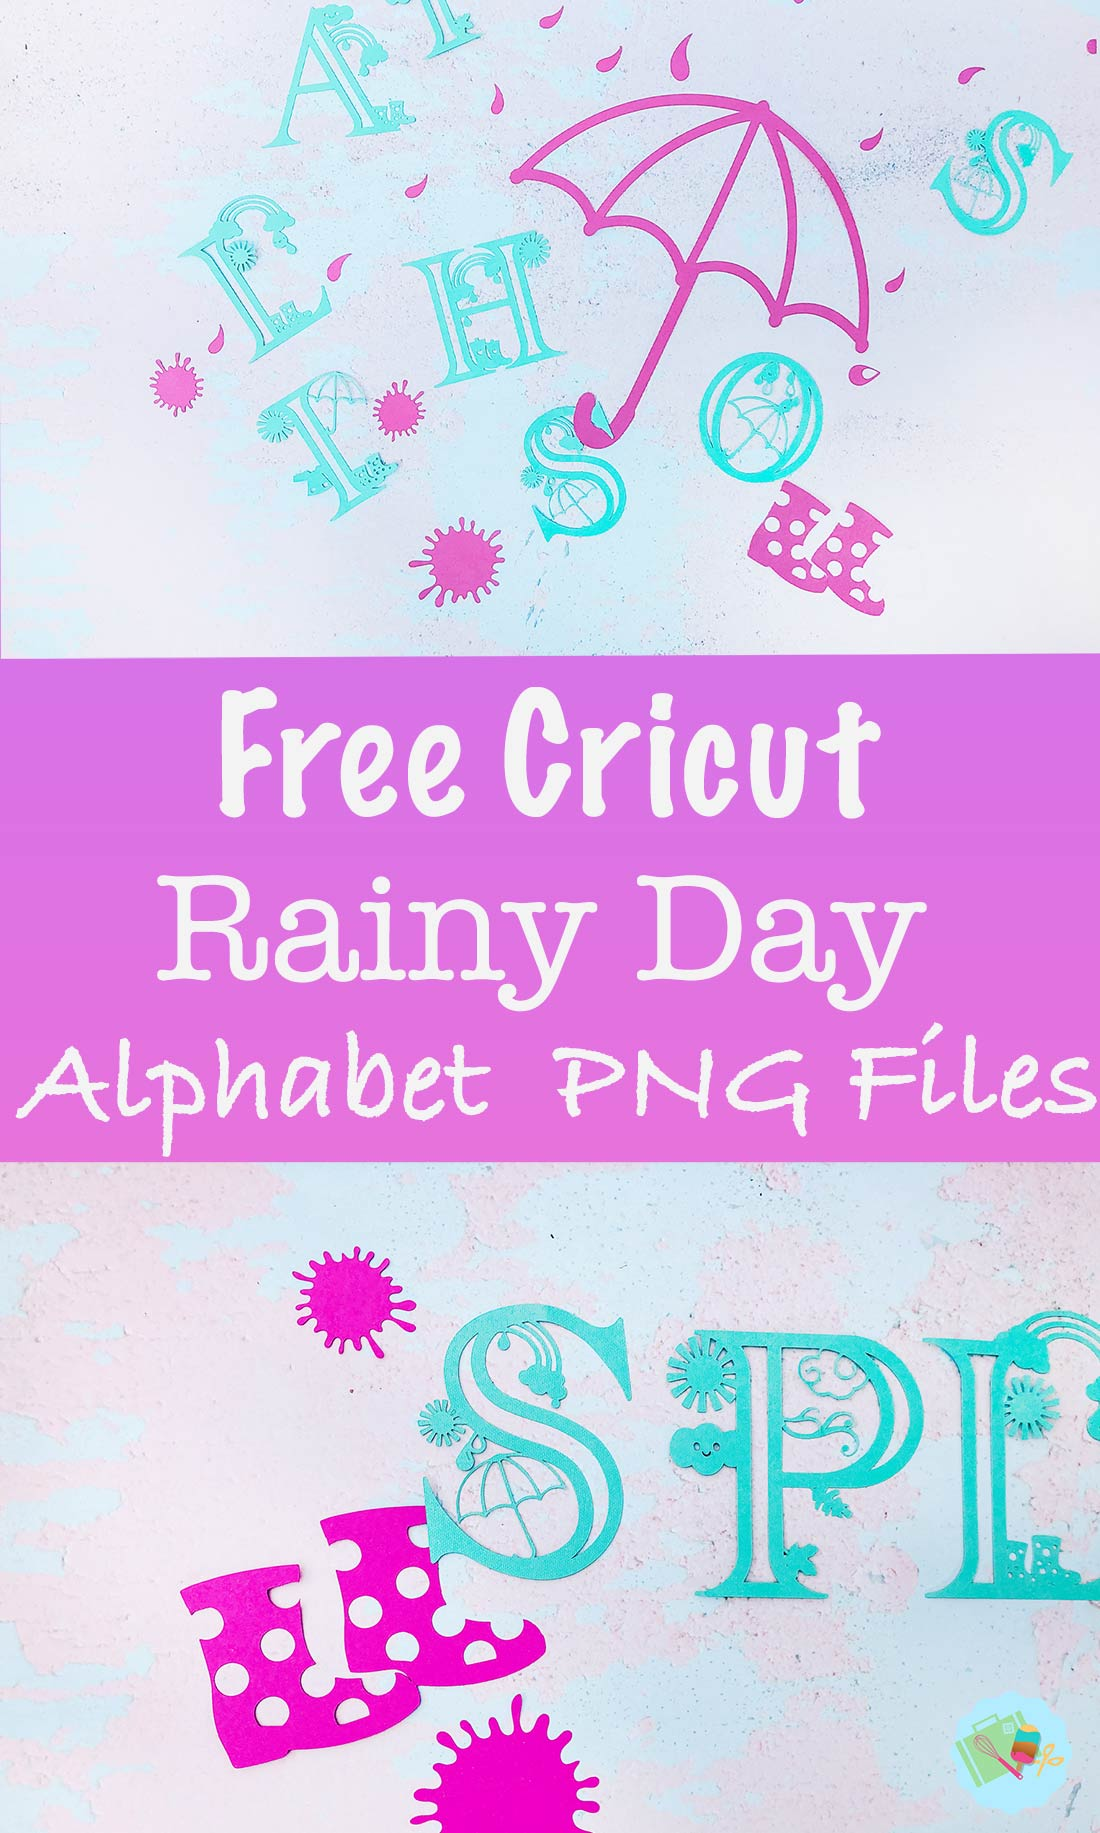 Free Cricut Rainy Day Alphabet PNG Files